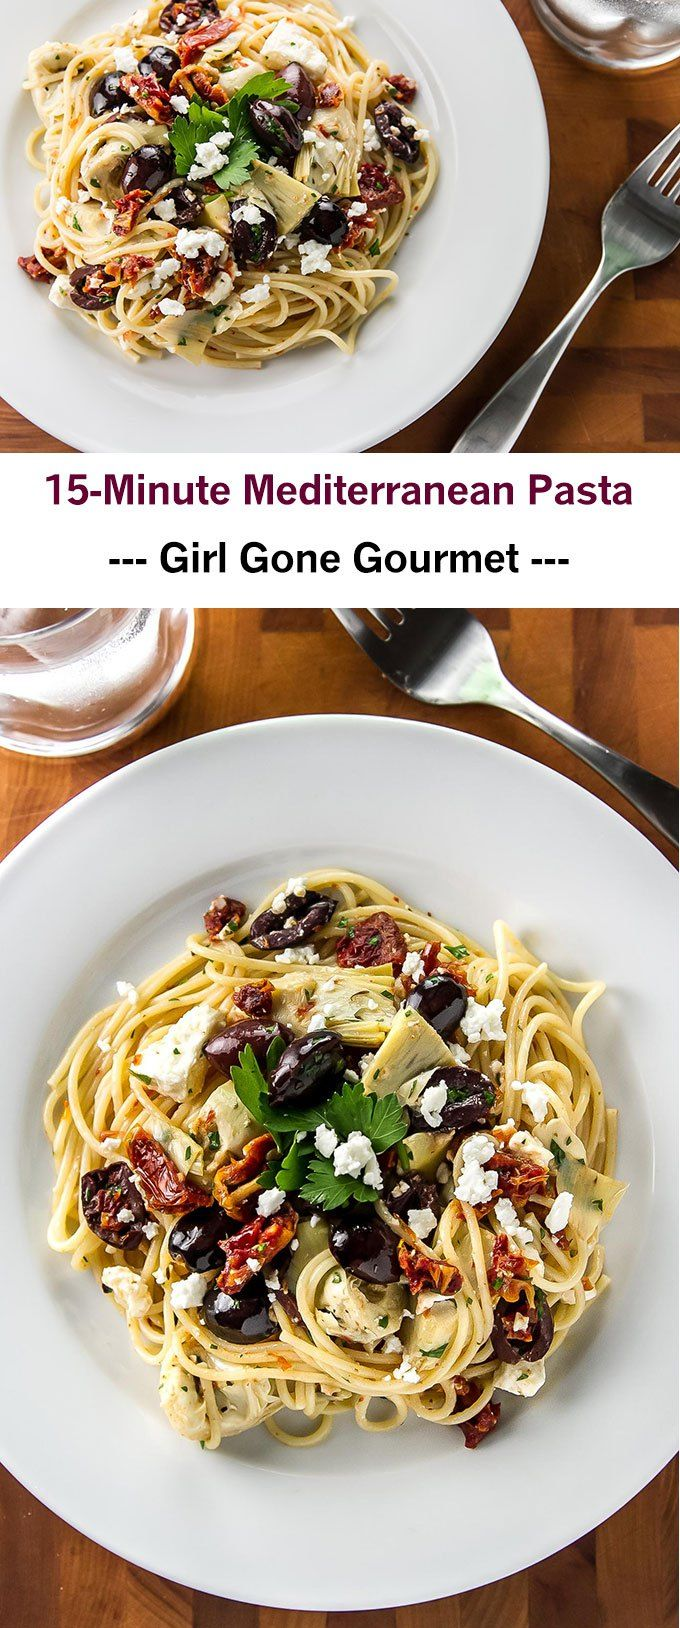 A 15-minute pasta with kalamata olives, sun dried tomatoes, artichoke hearts, and feta cheese